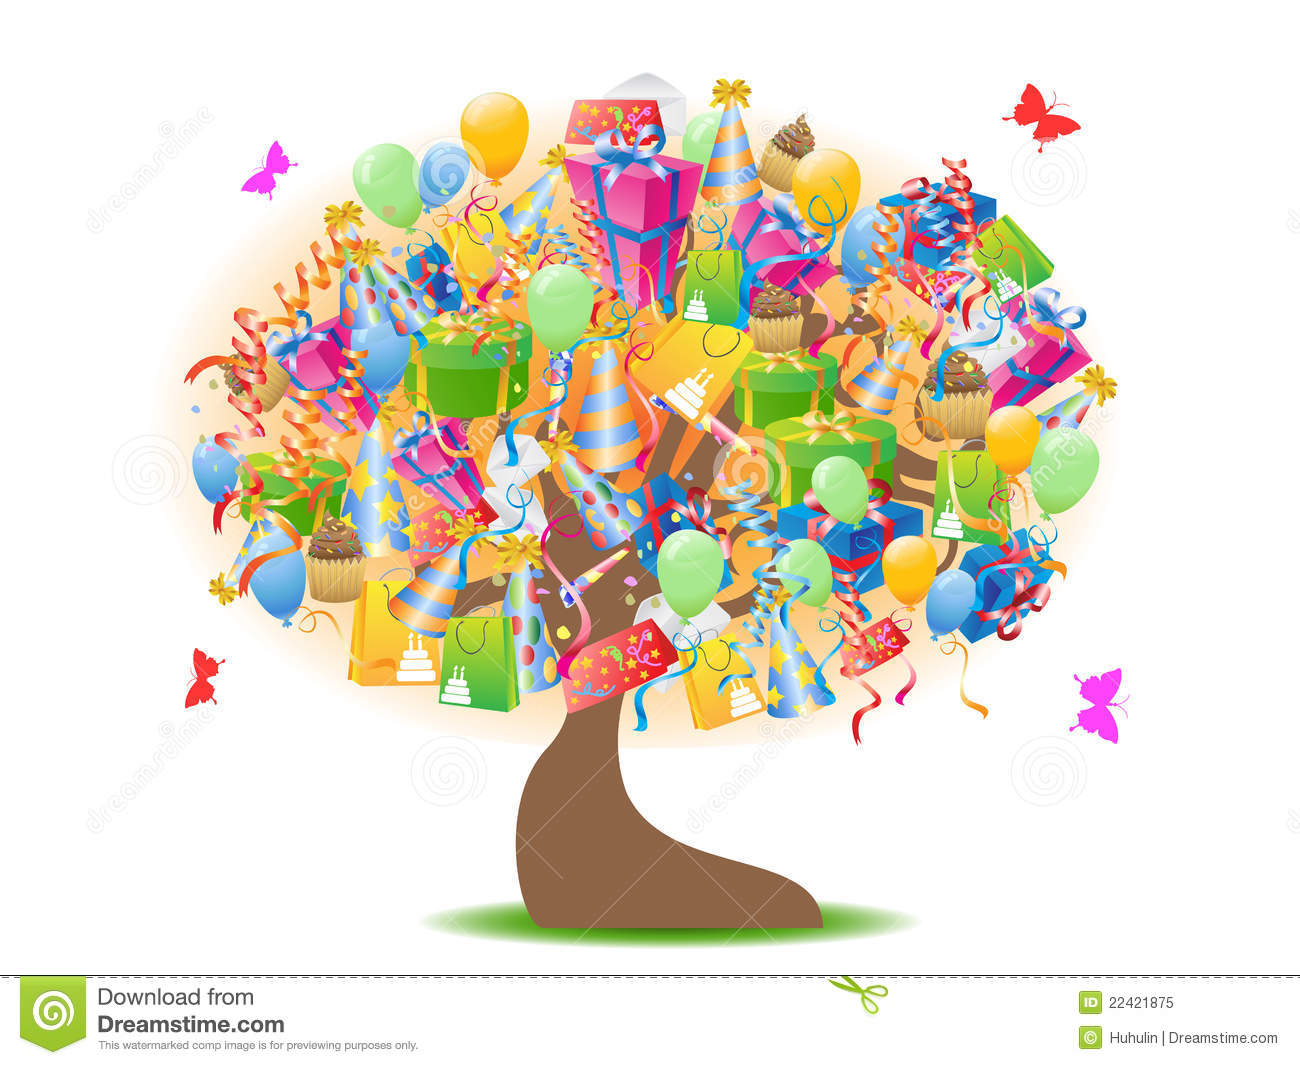 Birthday Gifts Tree Royalty Free Stock Photo - Image: 22421875